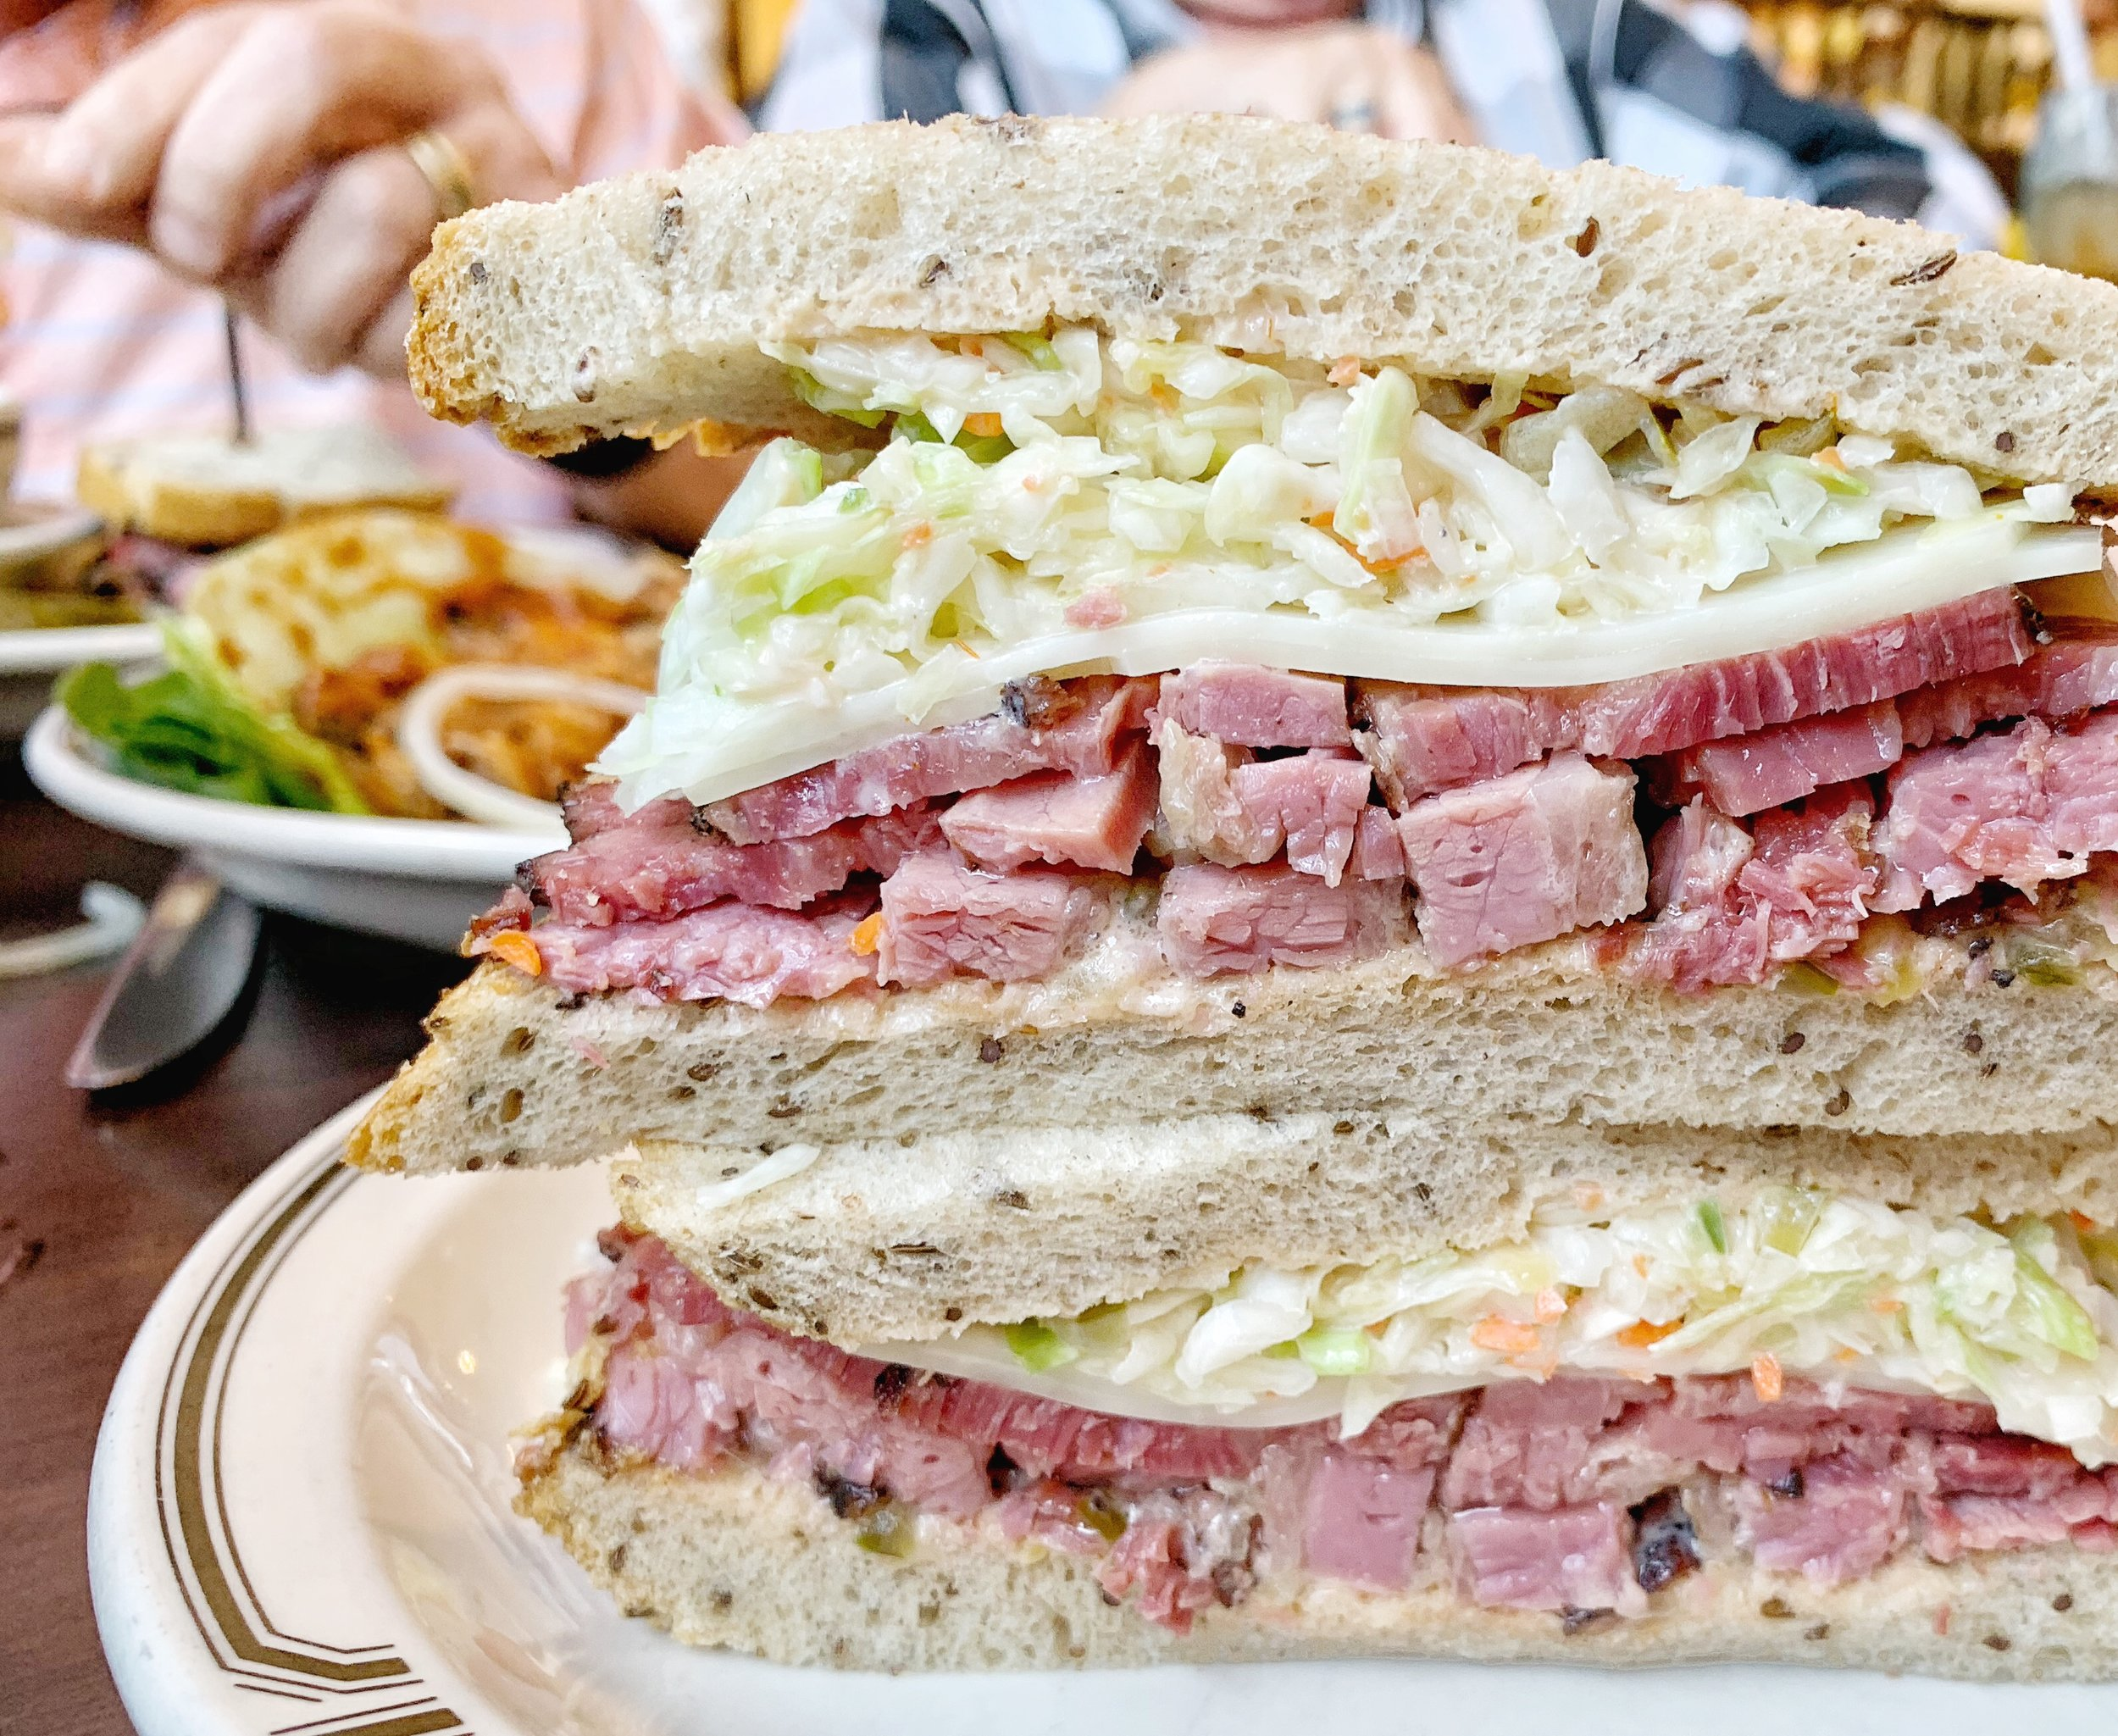 4. #19 - Langers, Los Angeles, CAYou haven't had rye bread until you've had the rye bread at Langers in LA. Put a pastrami reuben in between two slices of the heavenly bread and you've got yourself one of the best sandwiches in the world.